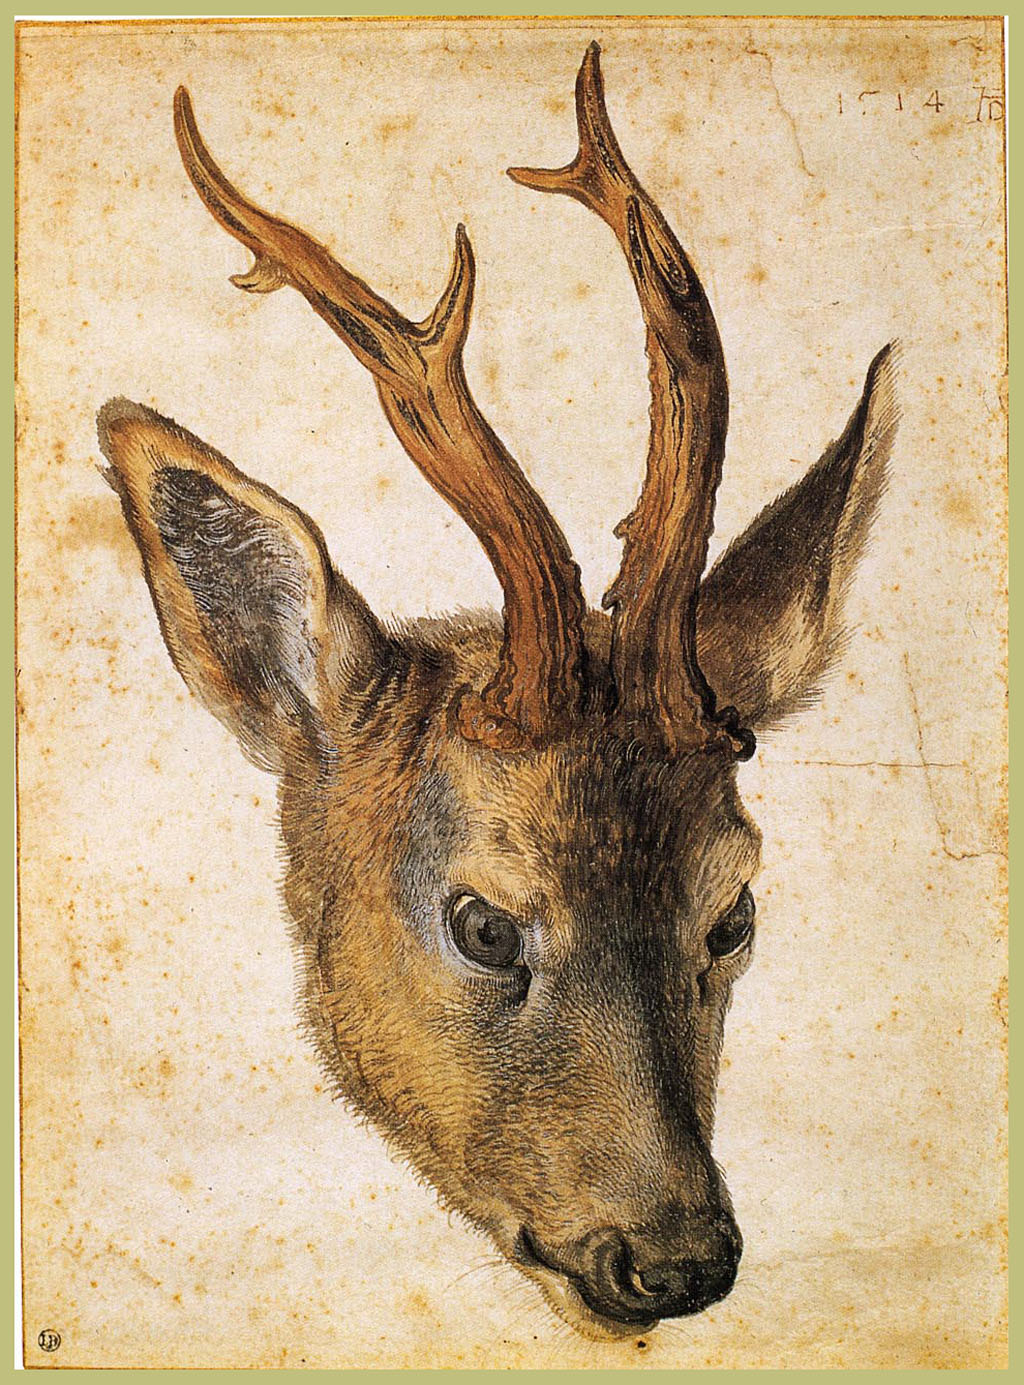 the life and times of artist and humanist albrecht durer The intellectual life and cultural milieu of albrecht durer as seen through  1 - the intellectual life and cultural milieu  a workingman humanist,.